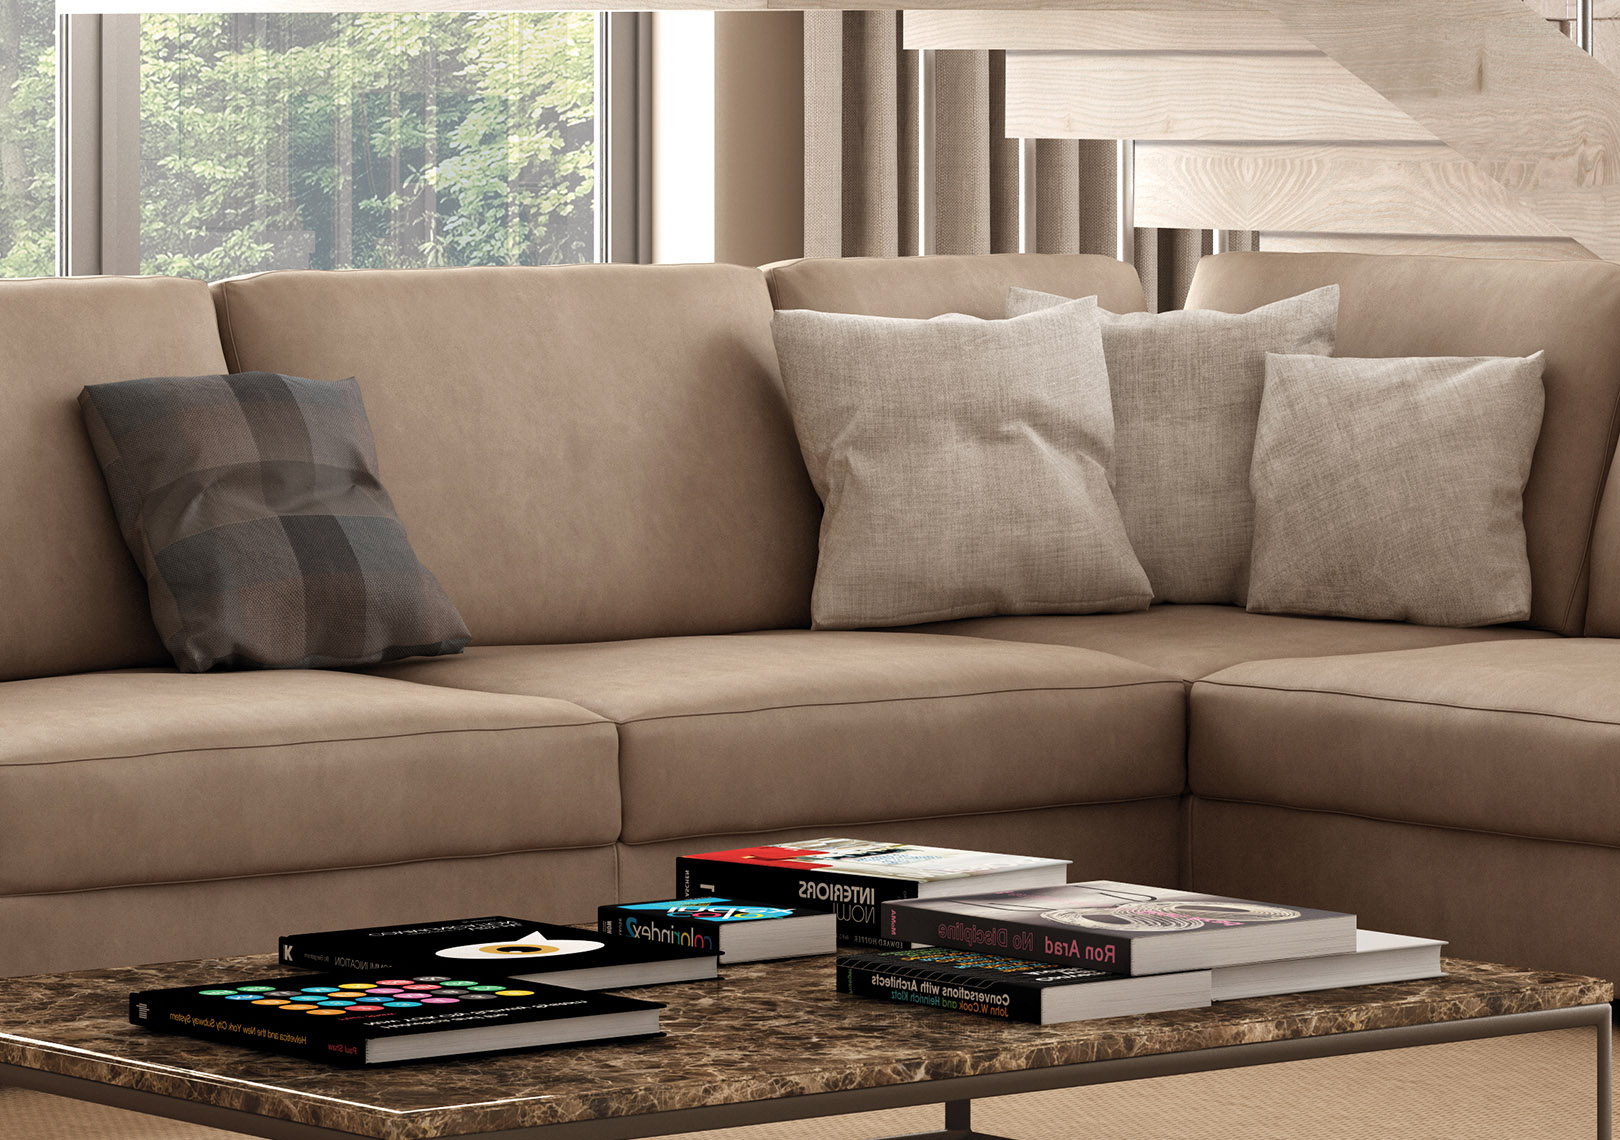 larger image Italian Sectional Sofa Set in